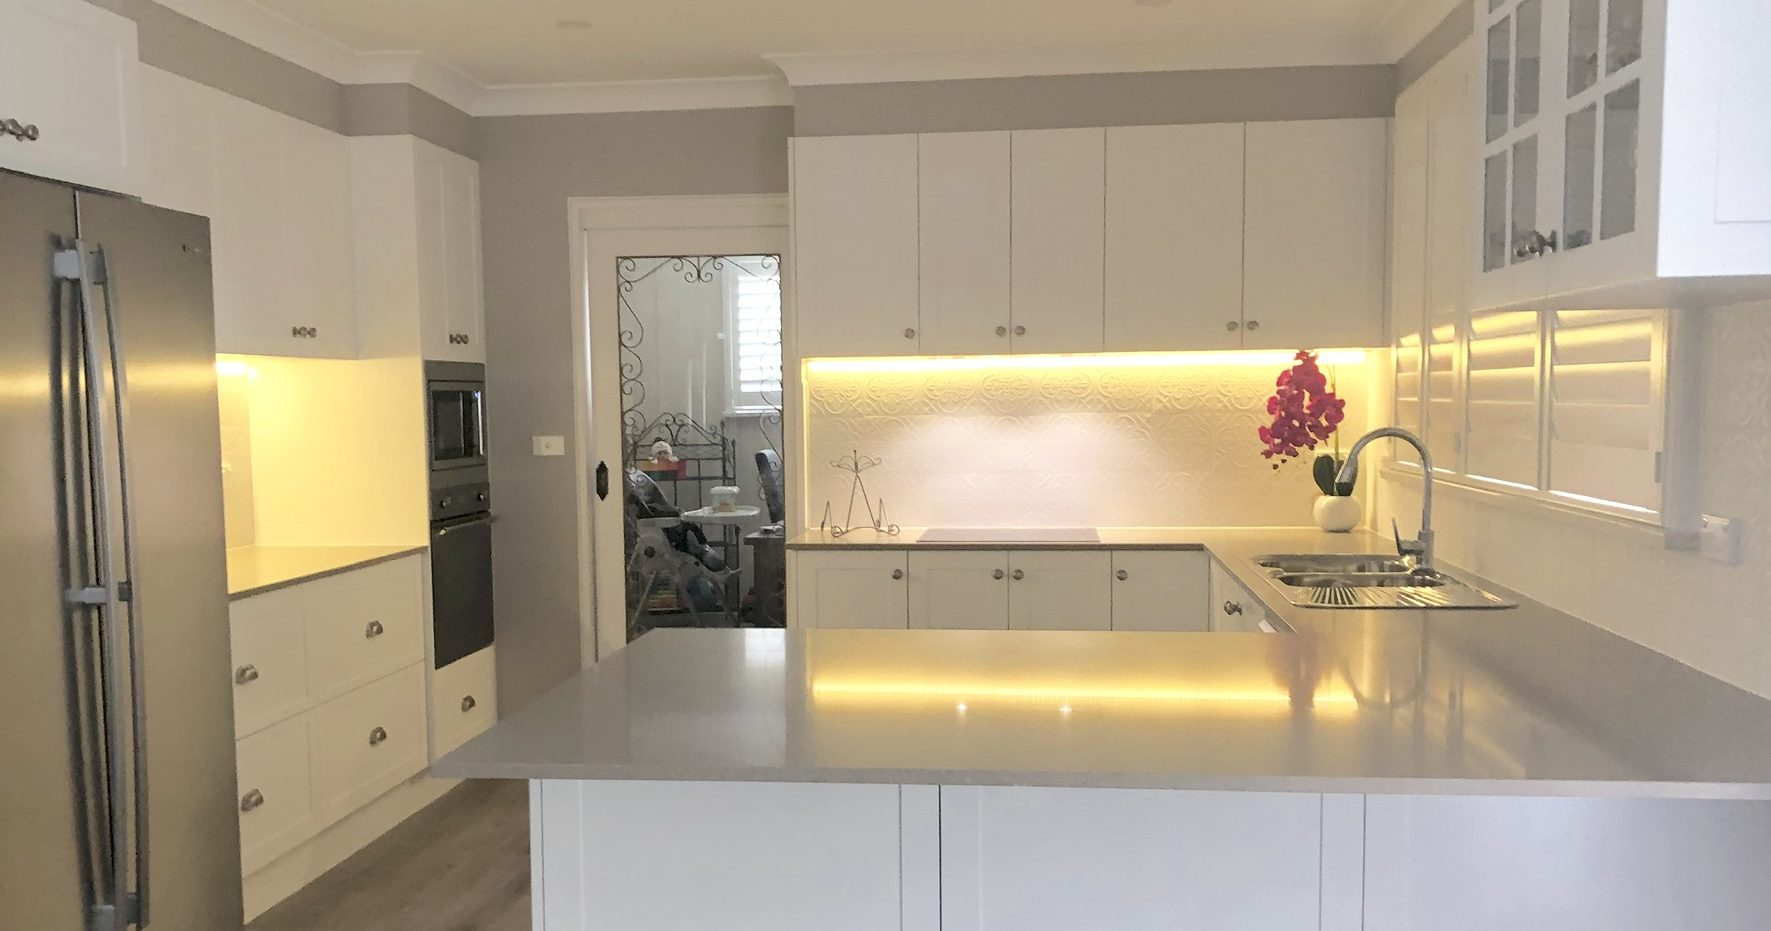 G shaped kitchen with an abundance of storage and benchtop space with peninsula cabinet for informal dining - kitchen renovation by Master Bathrooms & Kitchens.